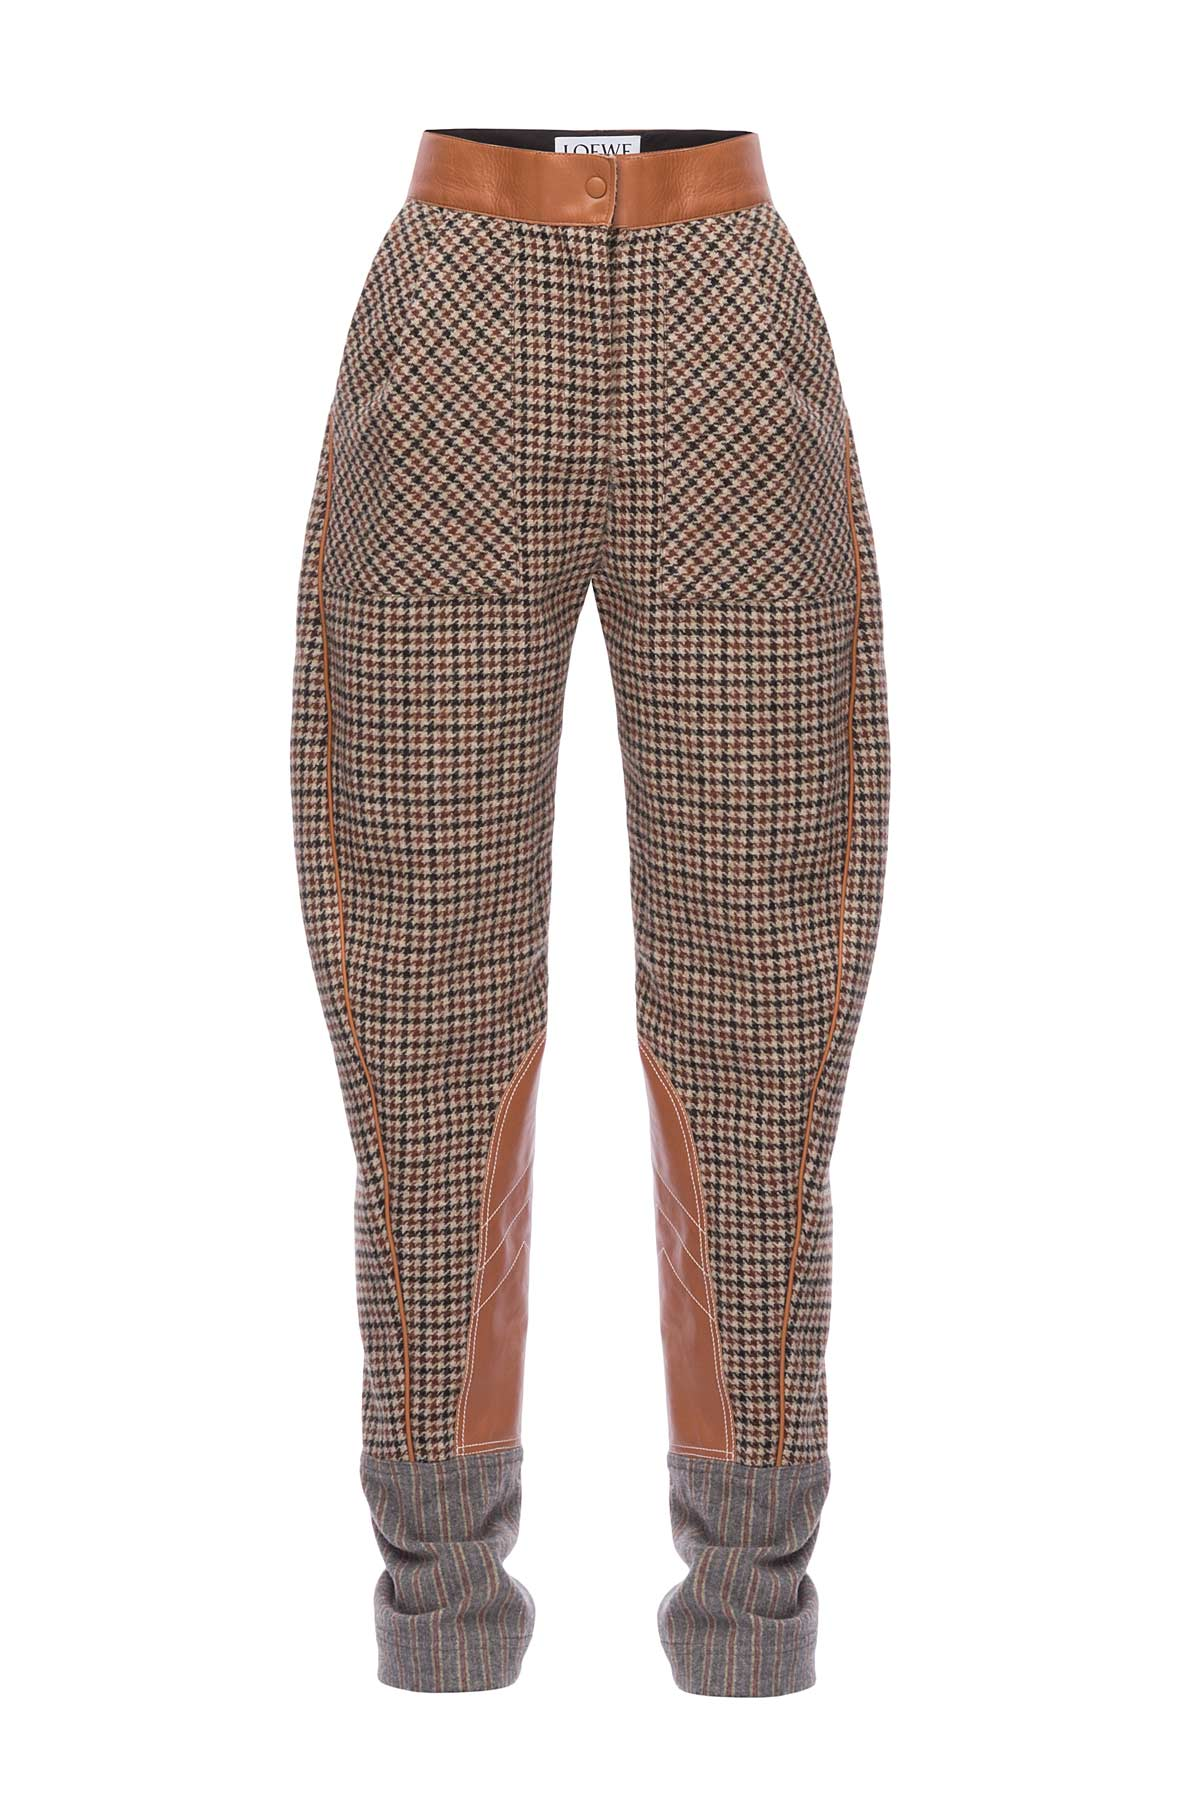 LOEWE Check Carrot Trousers Marron/Bronceado front